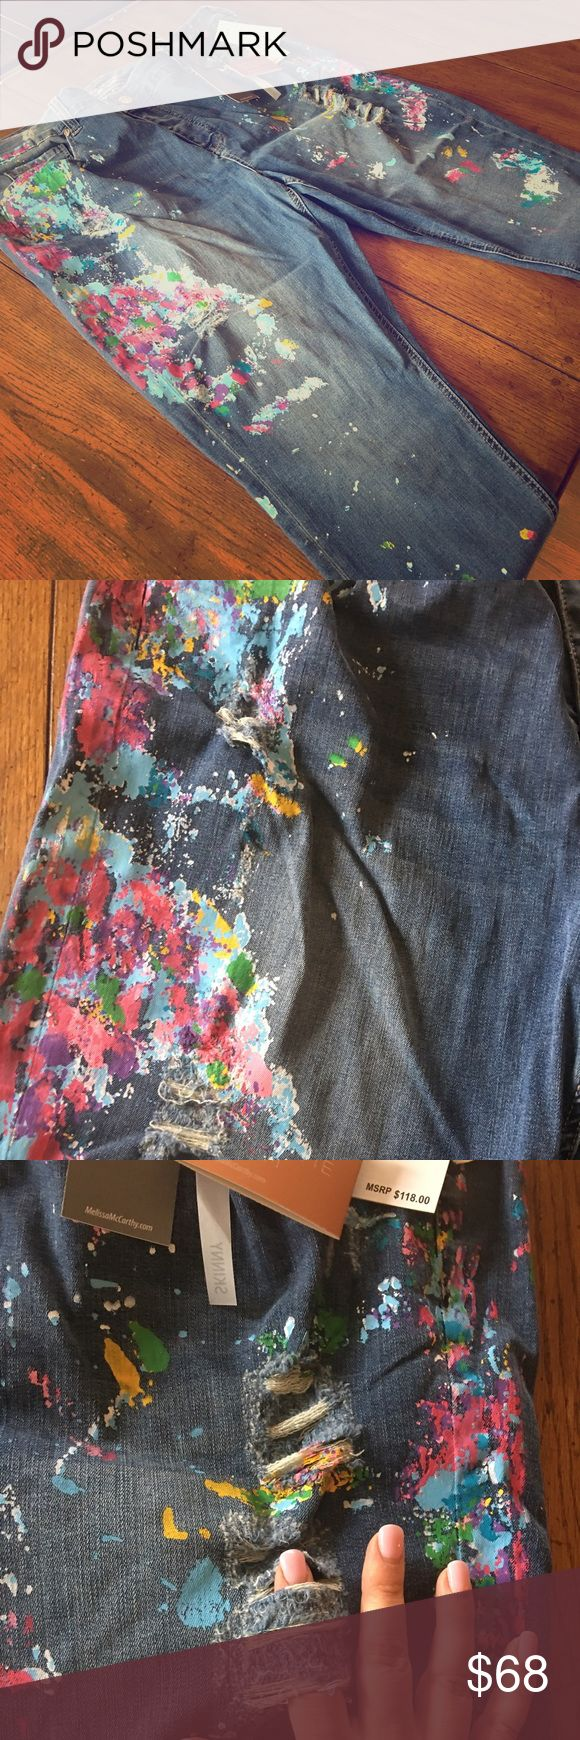 Melissa McCarthy/Seven Jeans Painted Jeans NWT Melissa McCarthy jeans by Seven jeans. Skinny jean fit with multi-colored paint pattern. Worn/torn patches in front thigh/knee area. Melissa McCarthy Pants Skinny